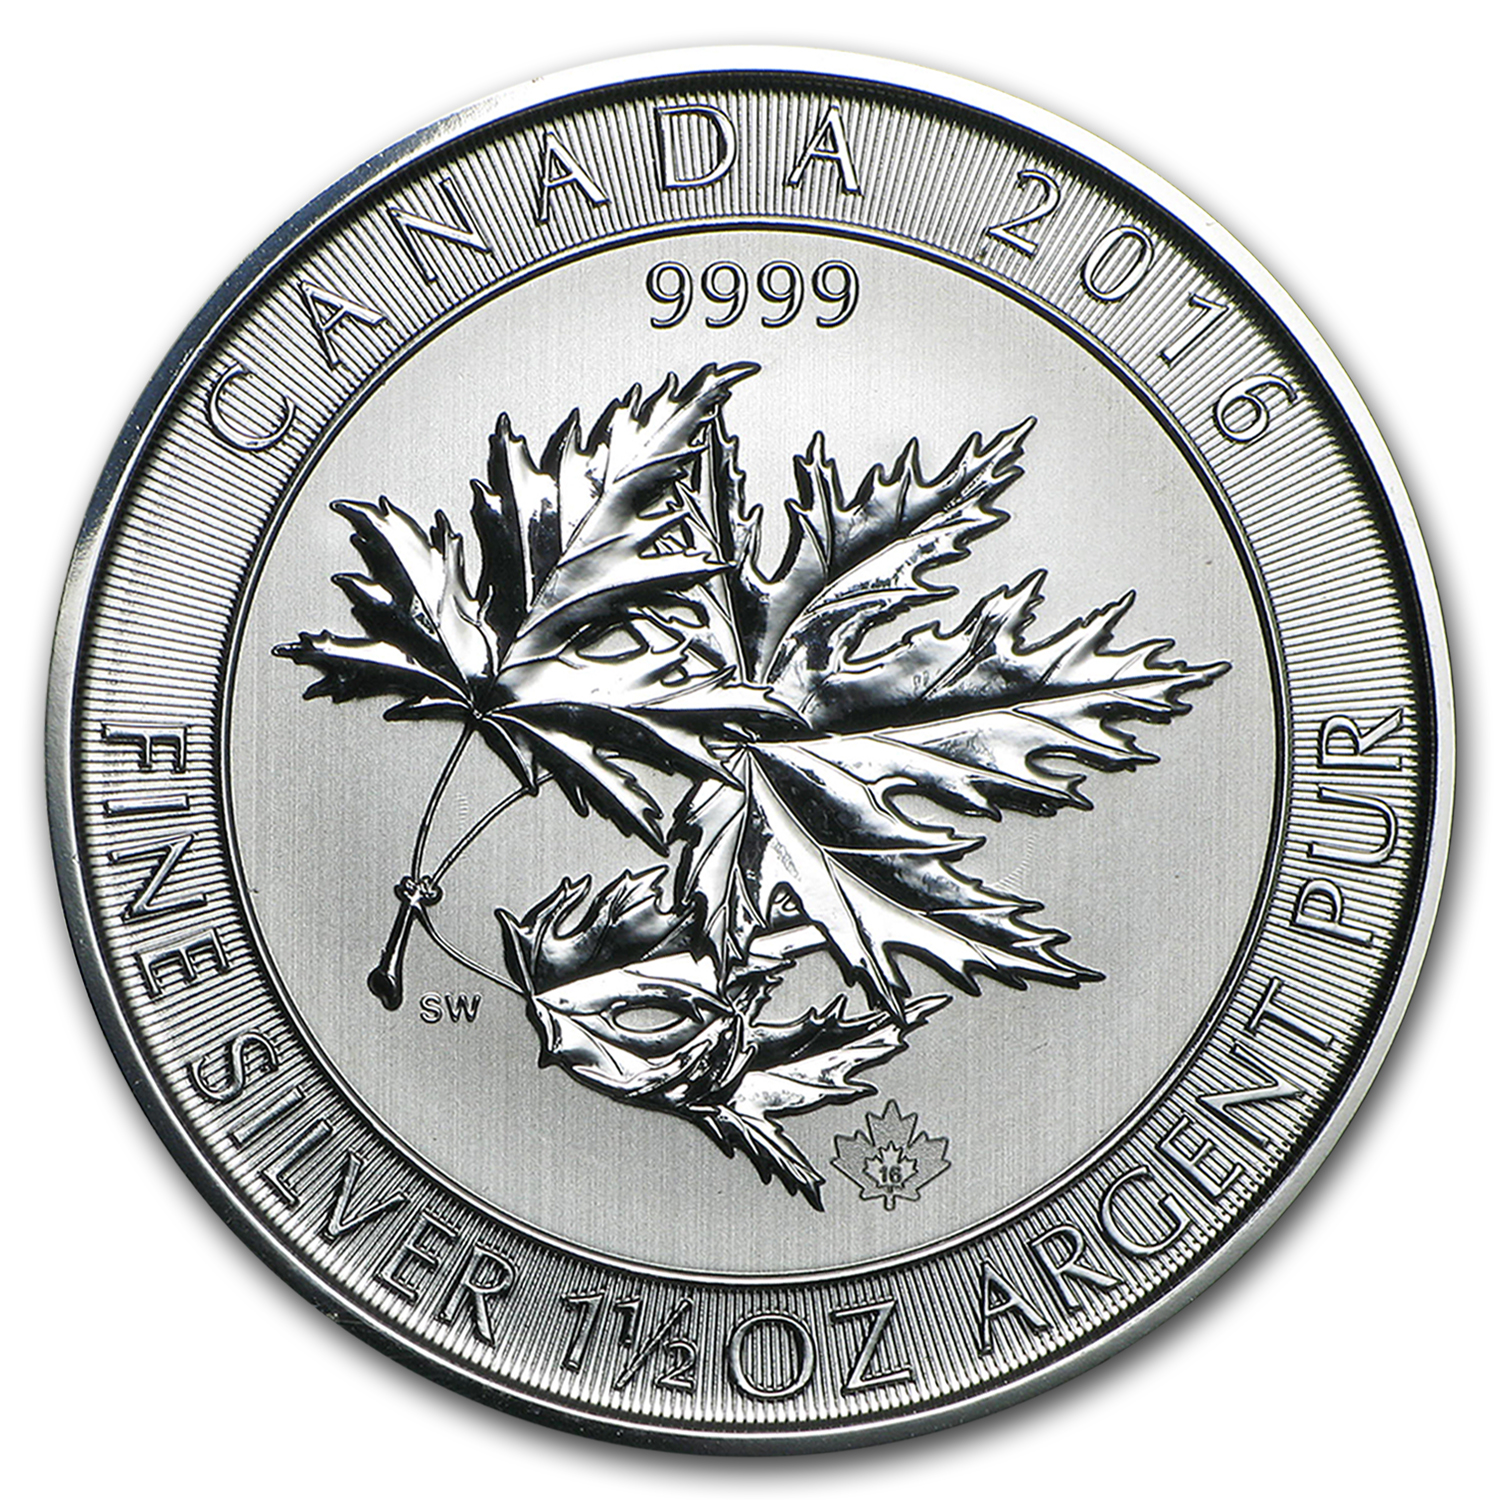 2016 Canada 1.5 oz Silver $8 SuperLeaf BU